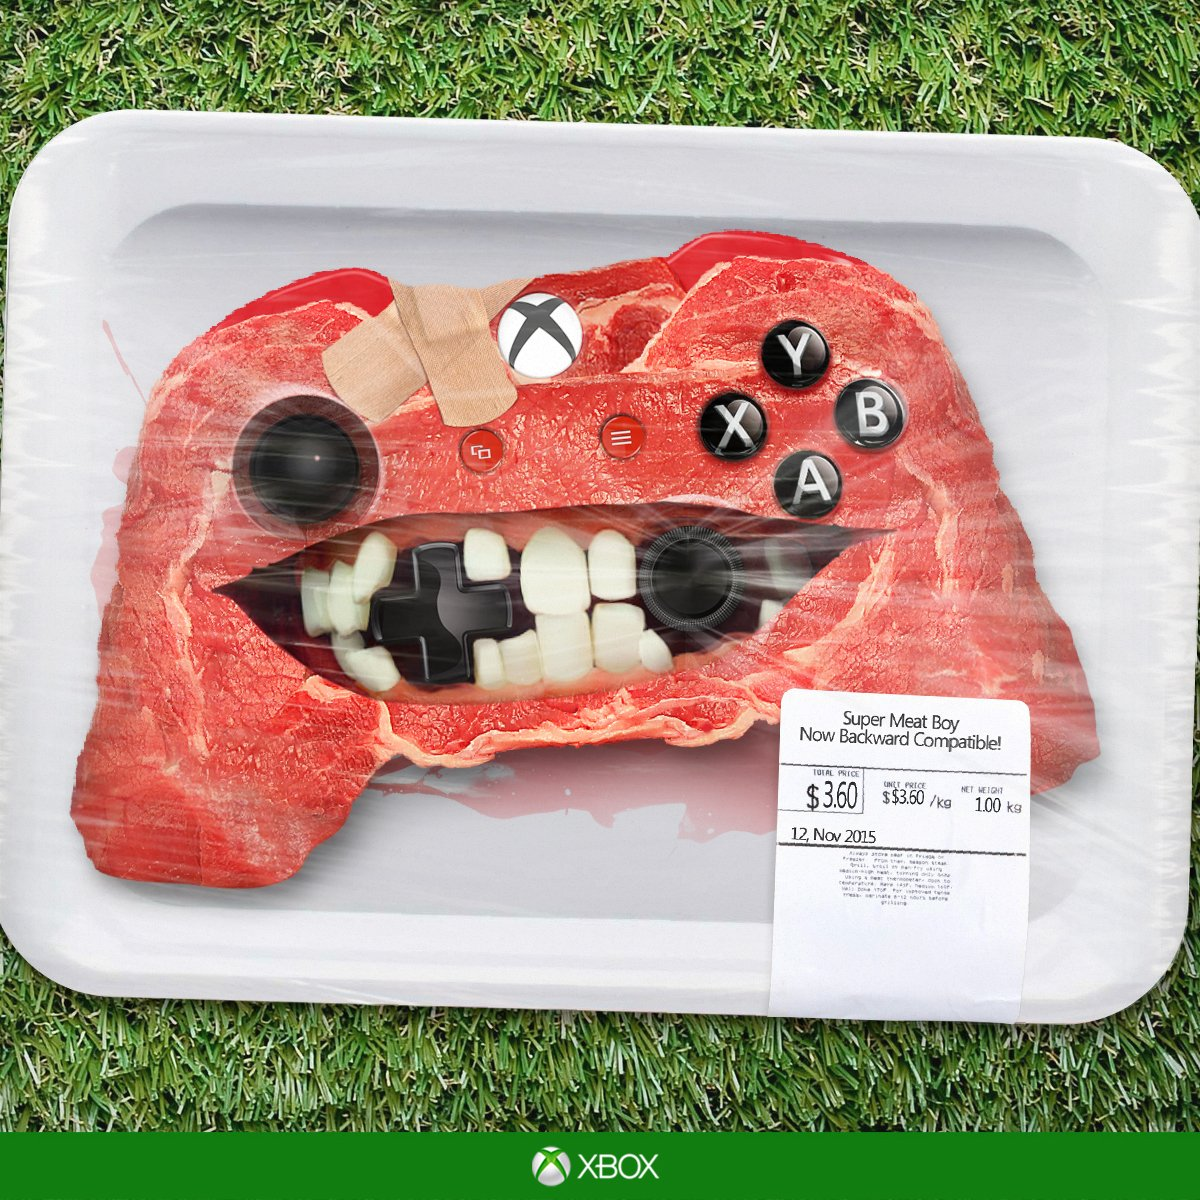 Fire up the Xbox One and Play Super Meat Boy [M] & 100+ other games now on your Xbox One https://t.co/ivps25Uu8w https://t.co/gSV5X7s4Di